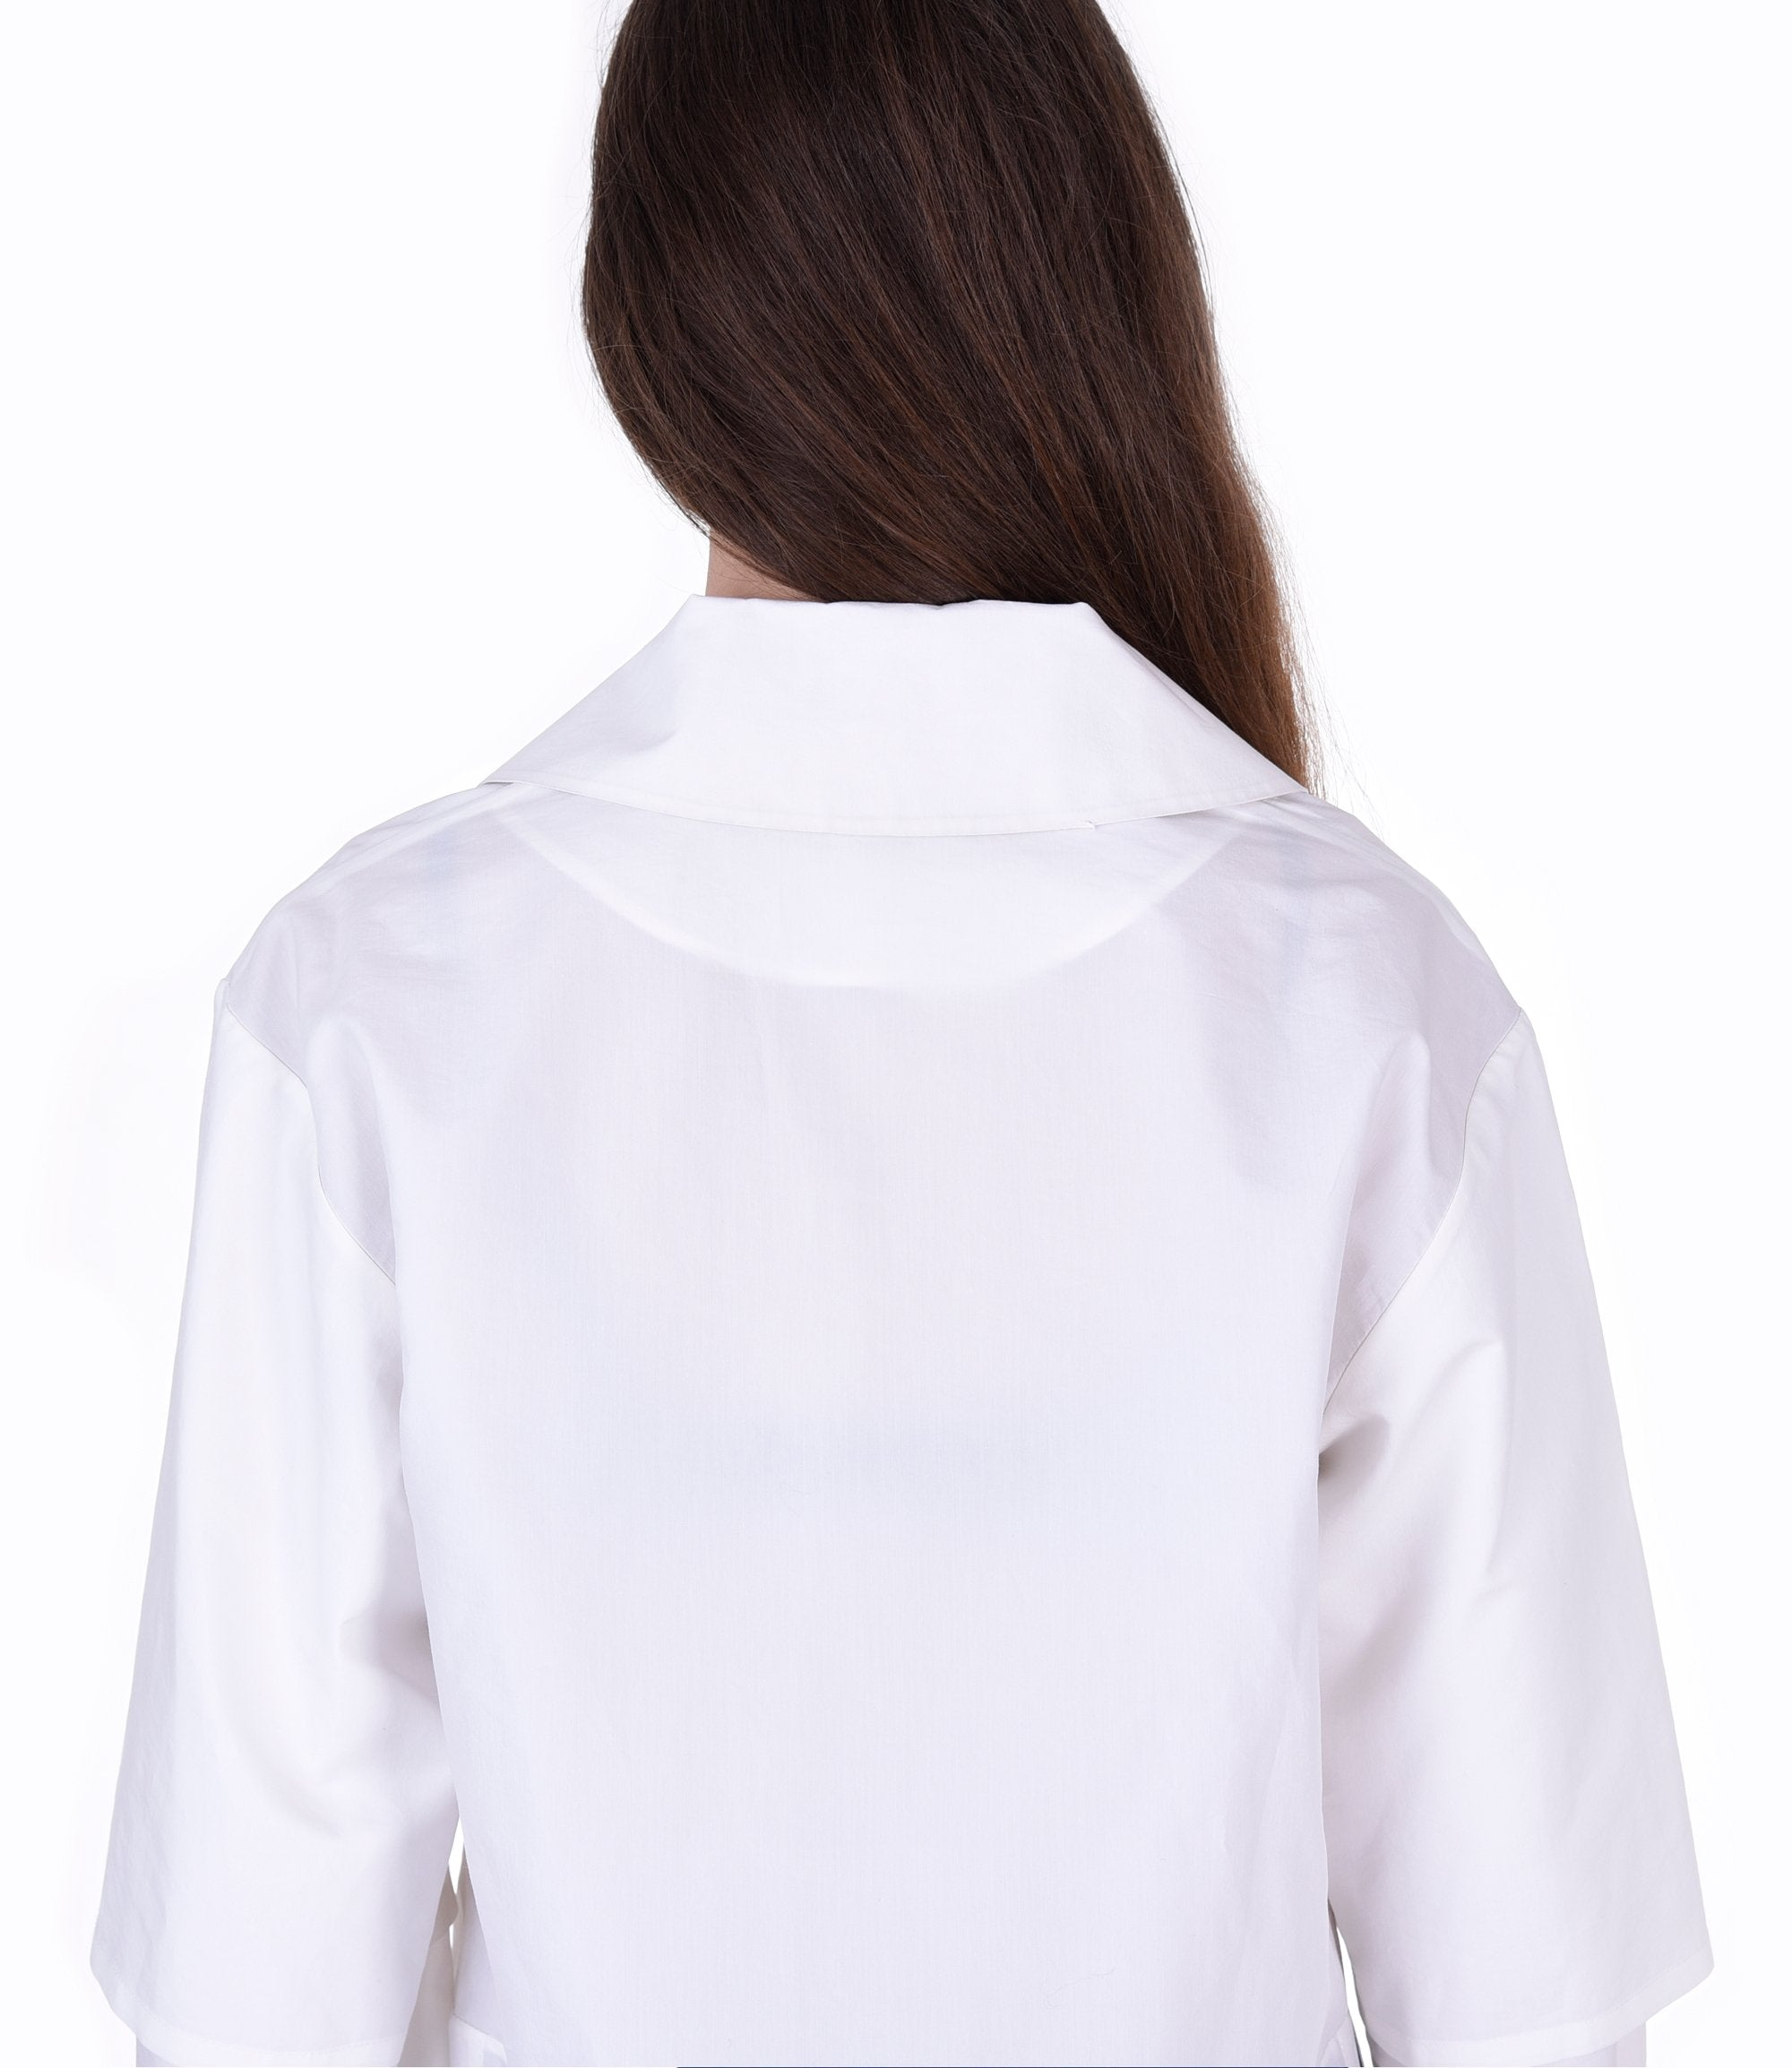 Long white shirt